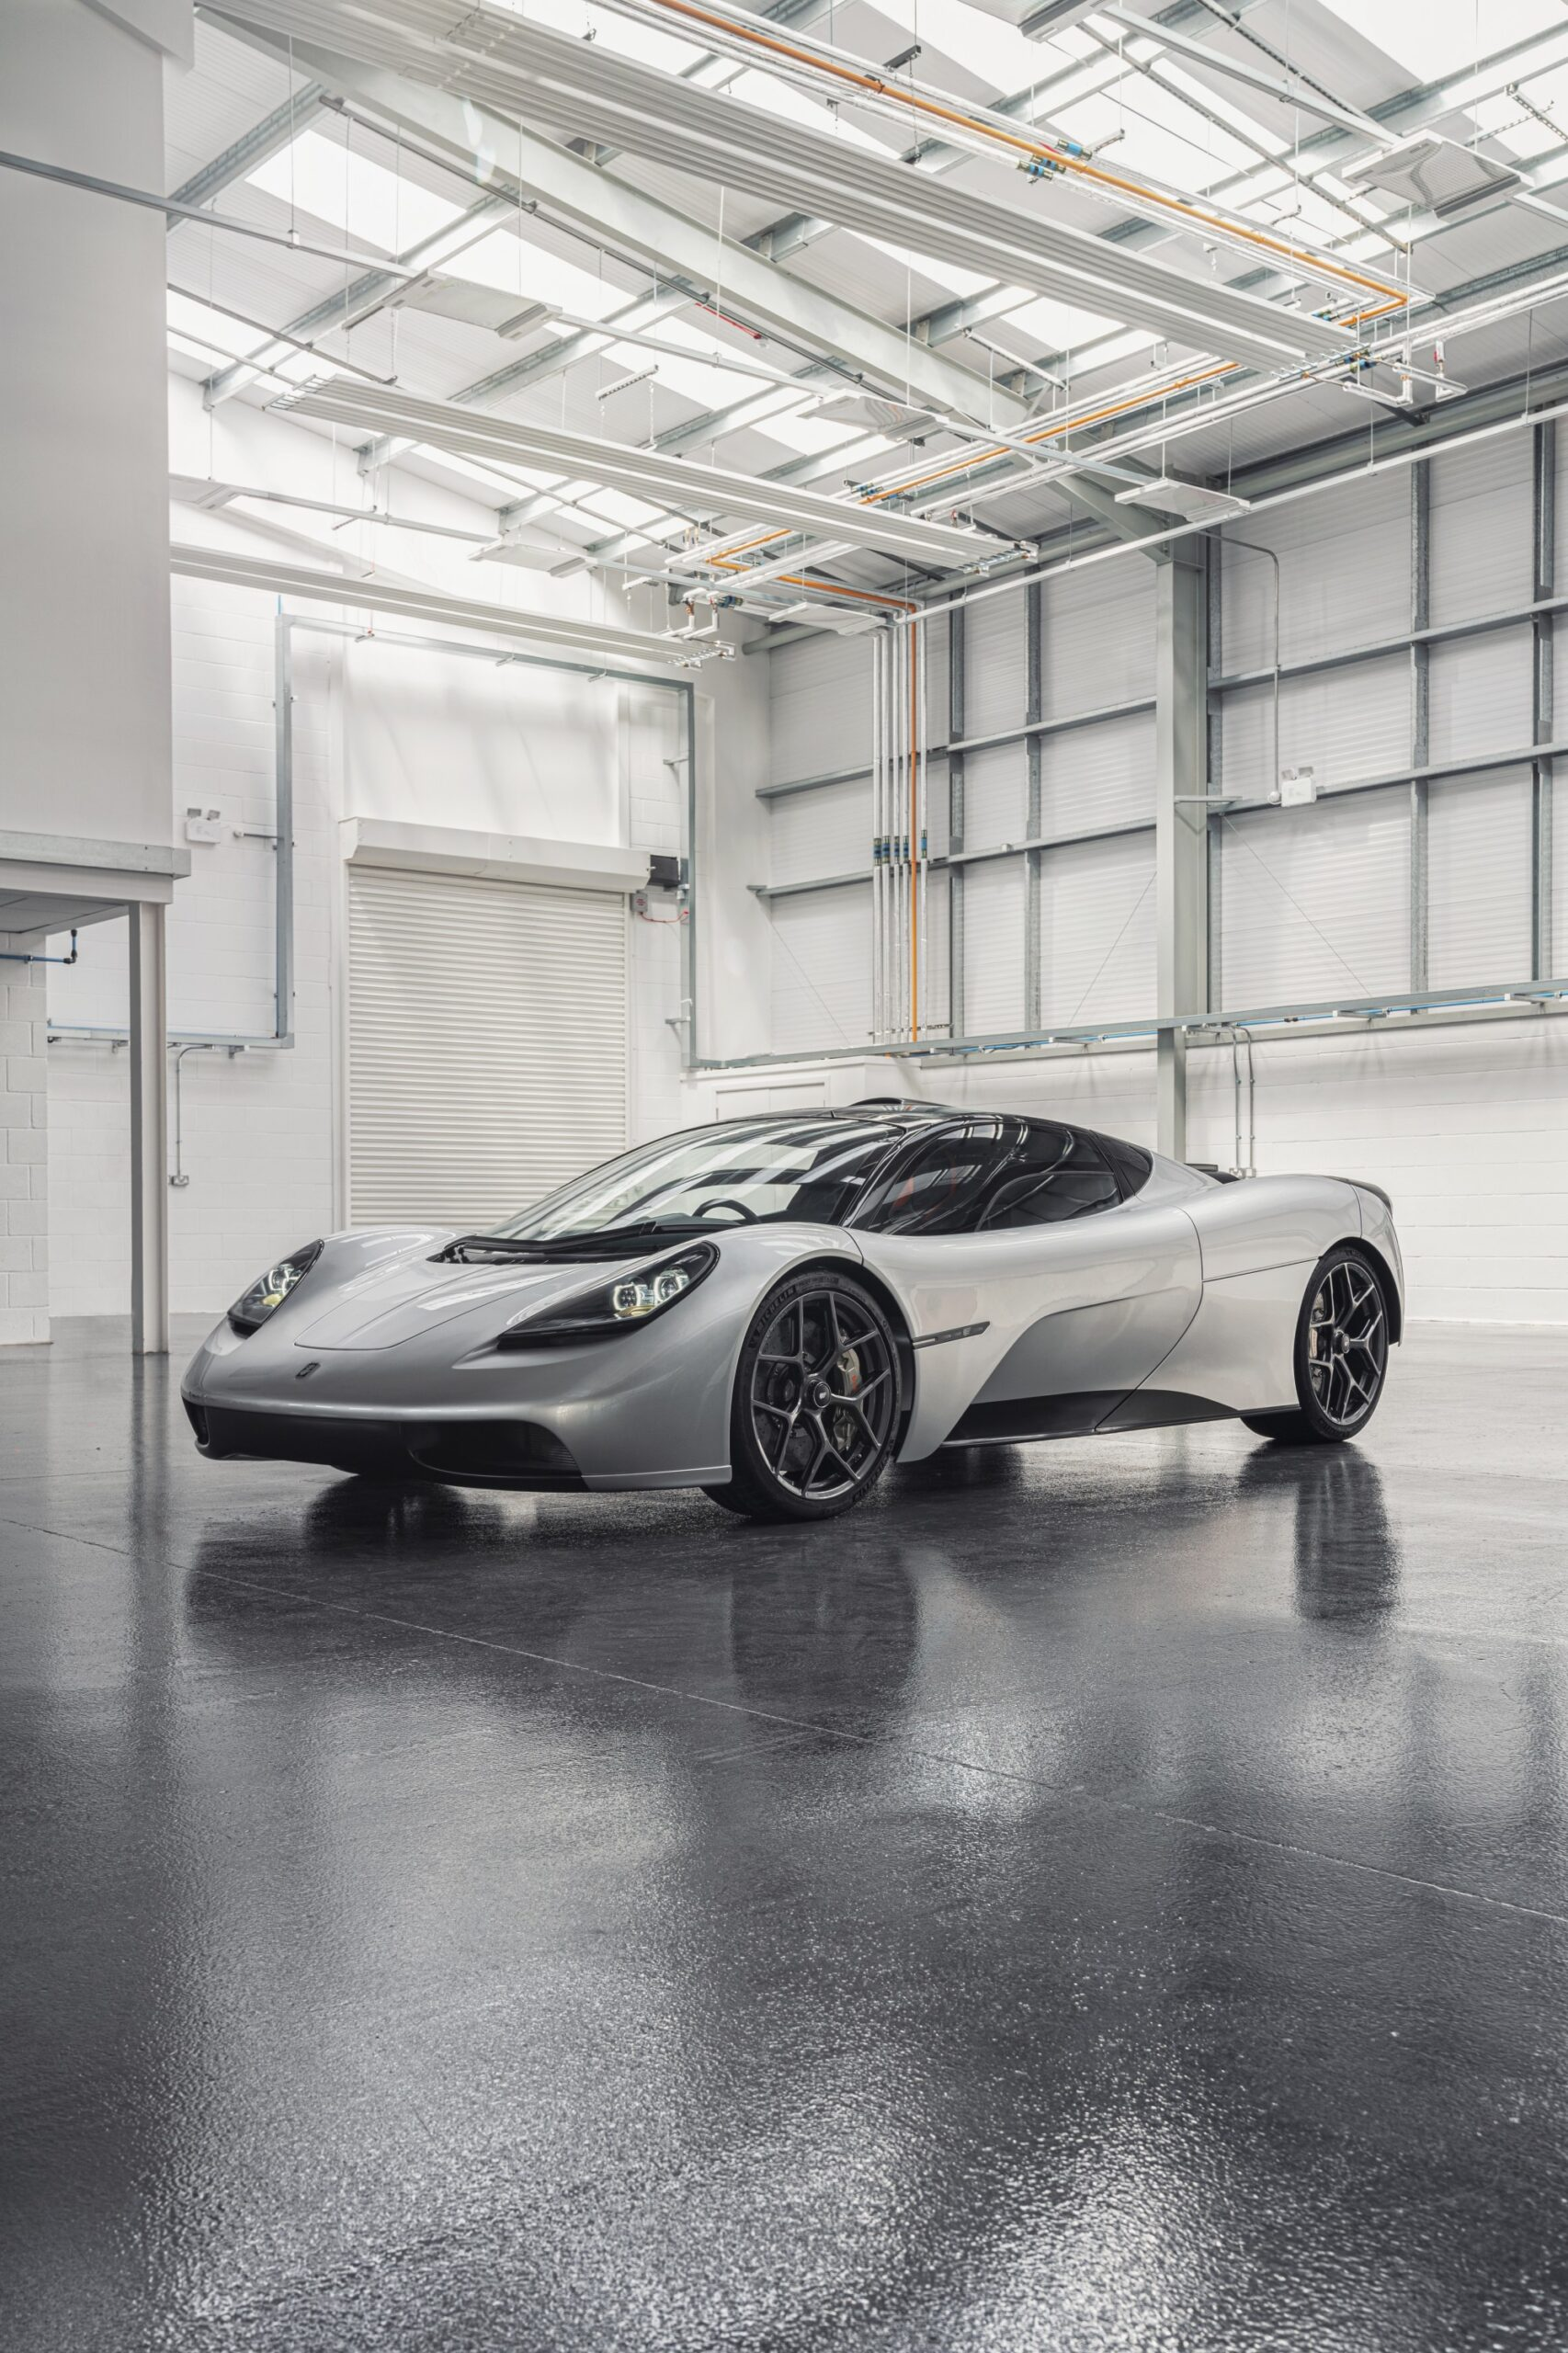 The Gordon Murray T.50 Is Here as the True Successor to the McLaren F1